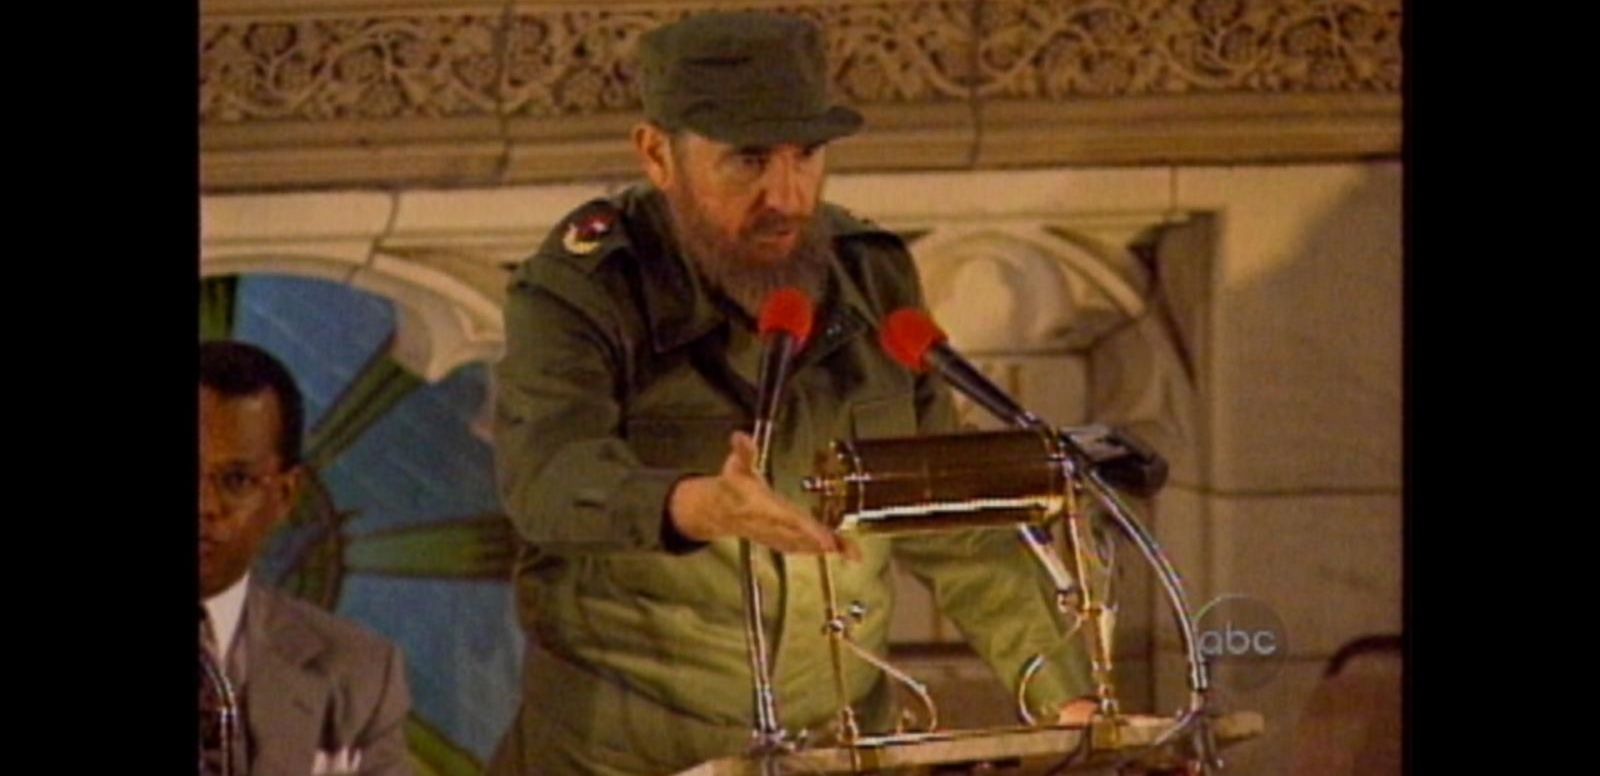 VIDEO: Oct. 23, 1995: The Cuban leader speaks to a crowd in Harlem during his U.S. visit.